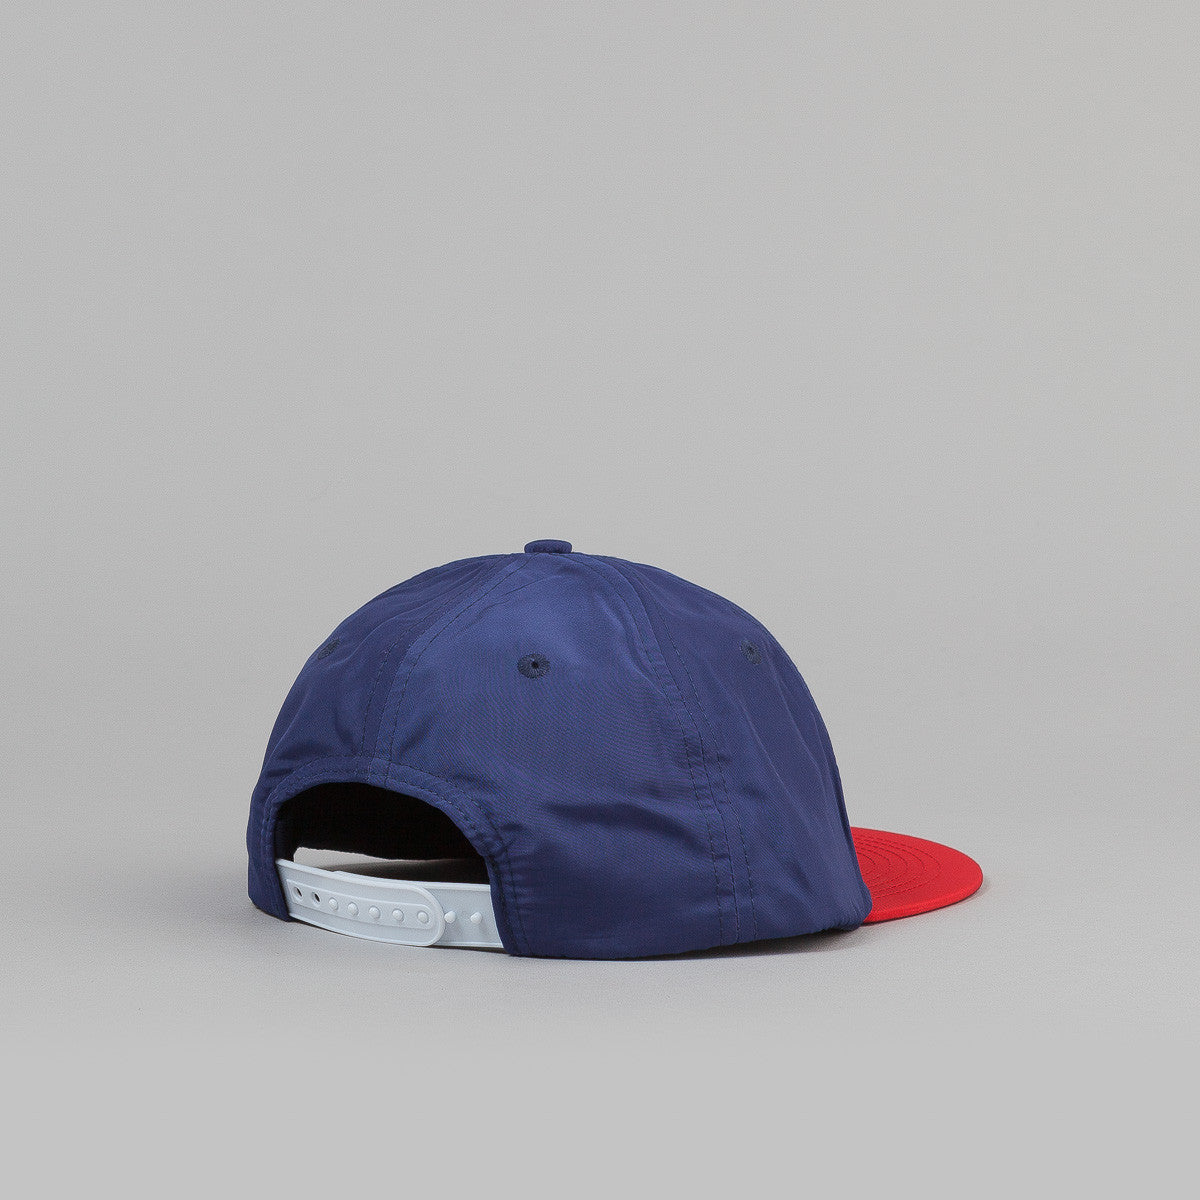 Helas Polo Club 6 Panel Cap - Navy